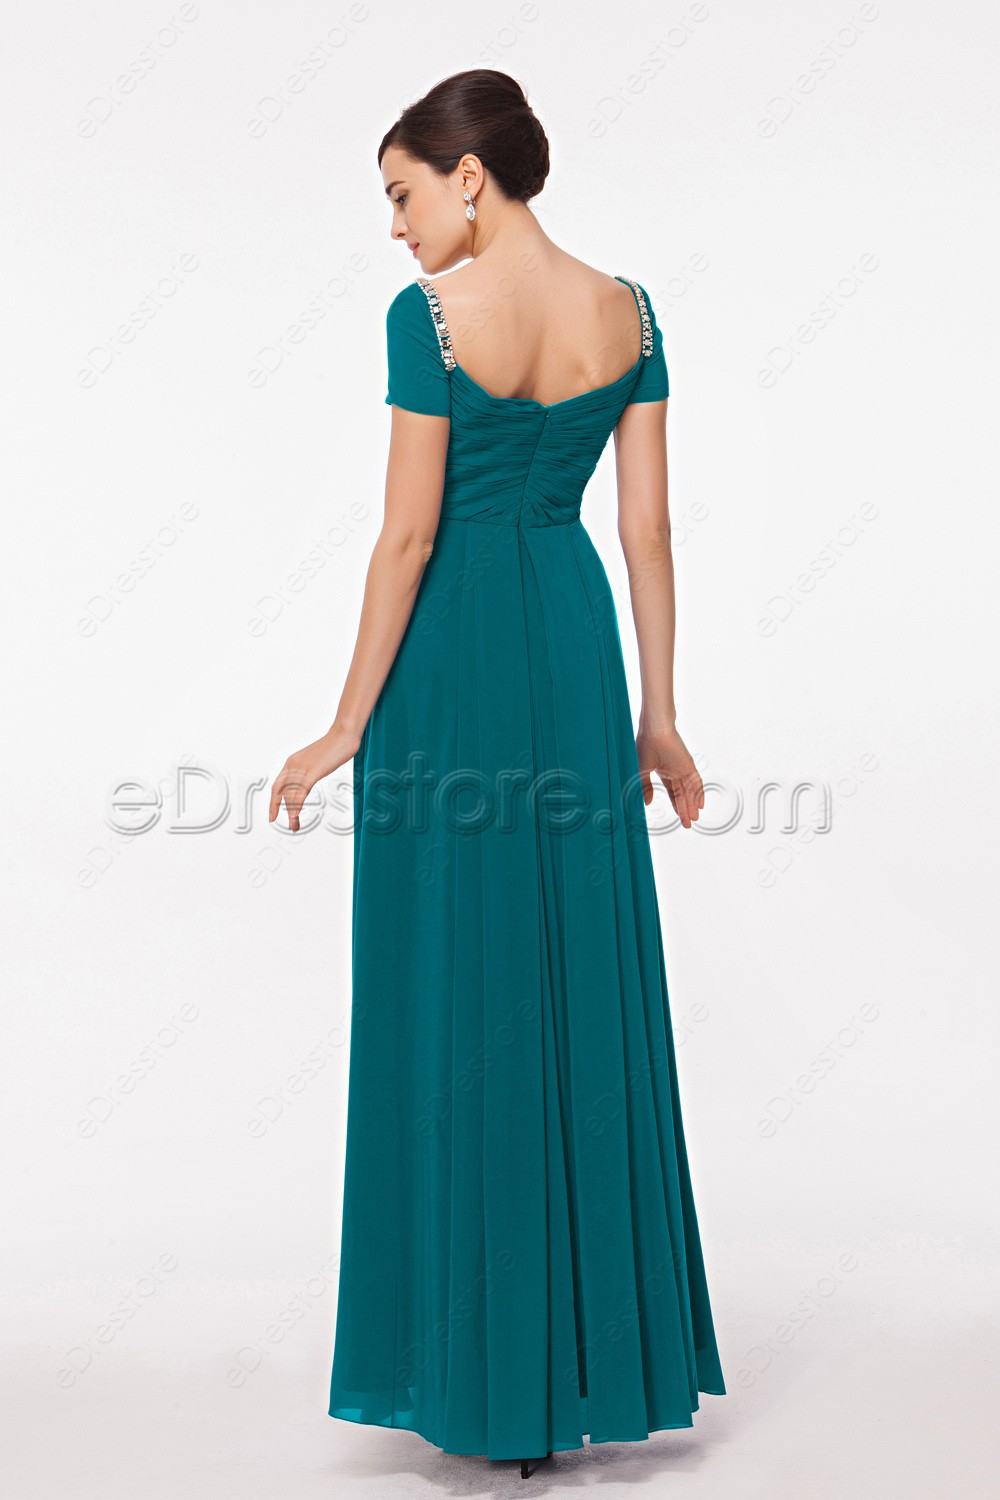 Modest Teal Prom Dresses With Sleeves